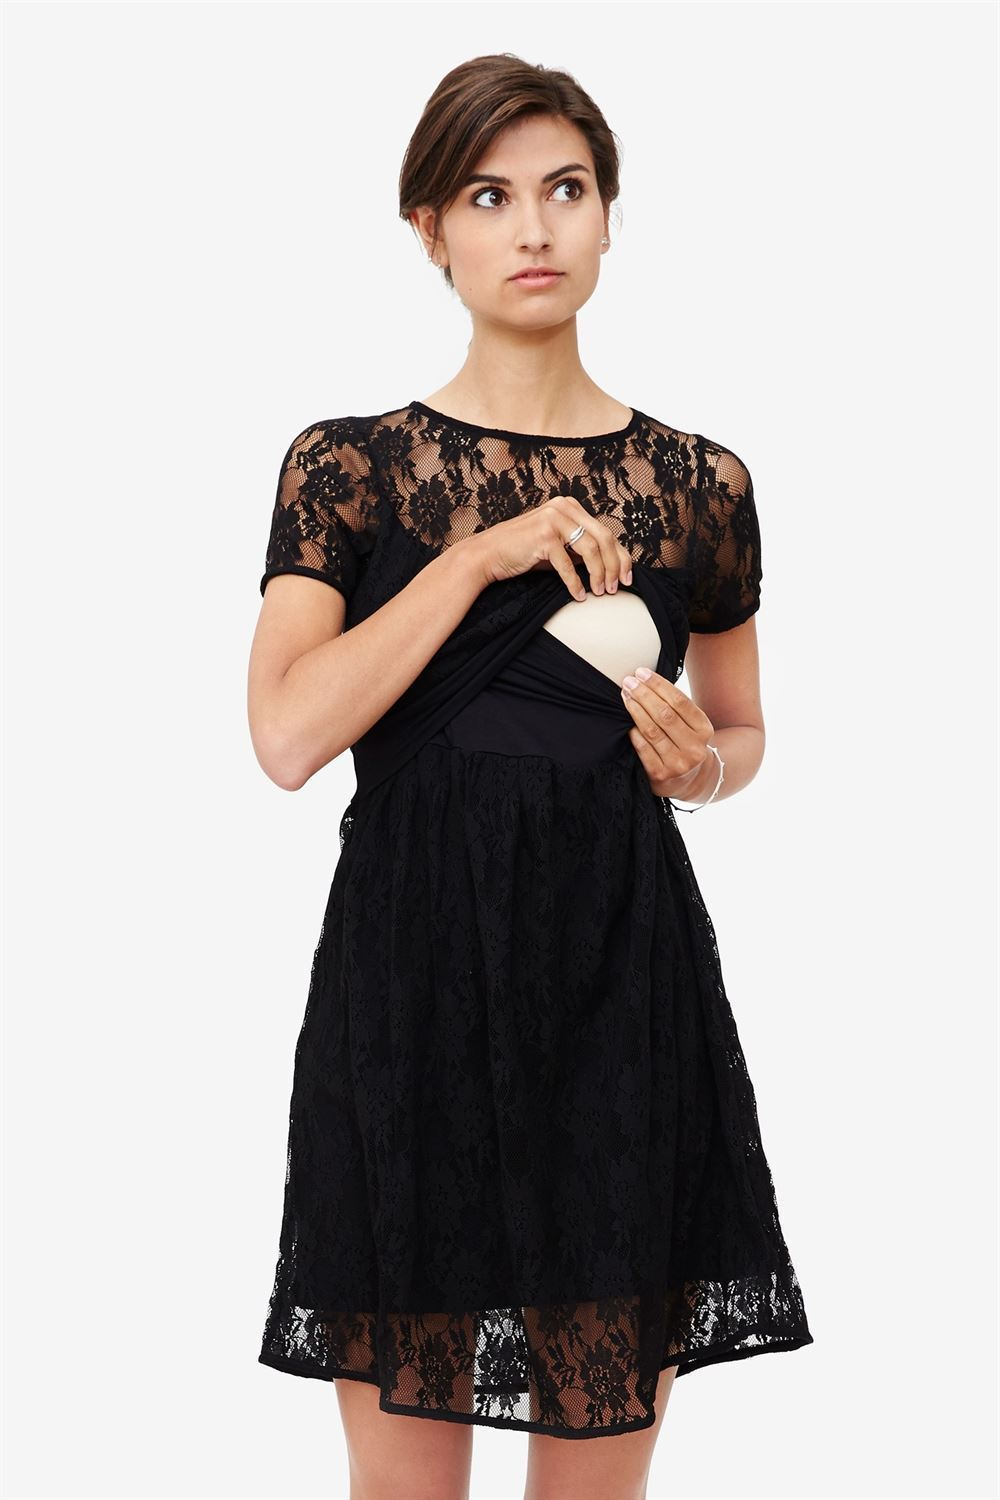 Black lace nursing dress with underdress - access for nursing